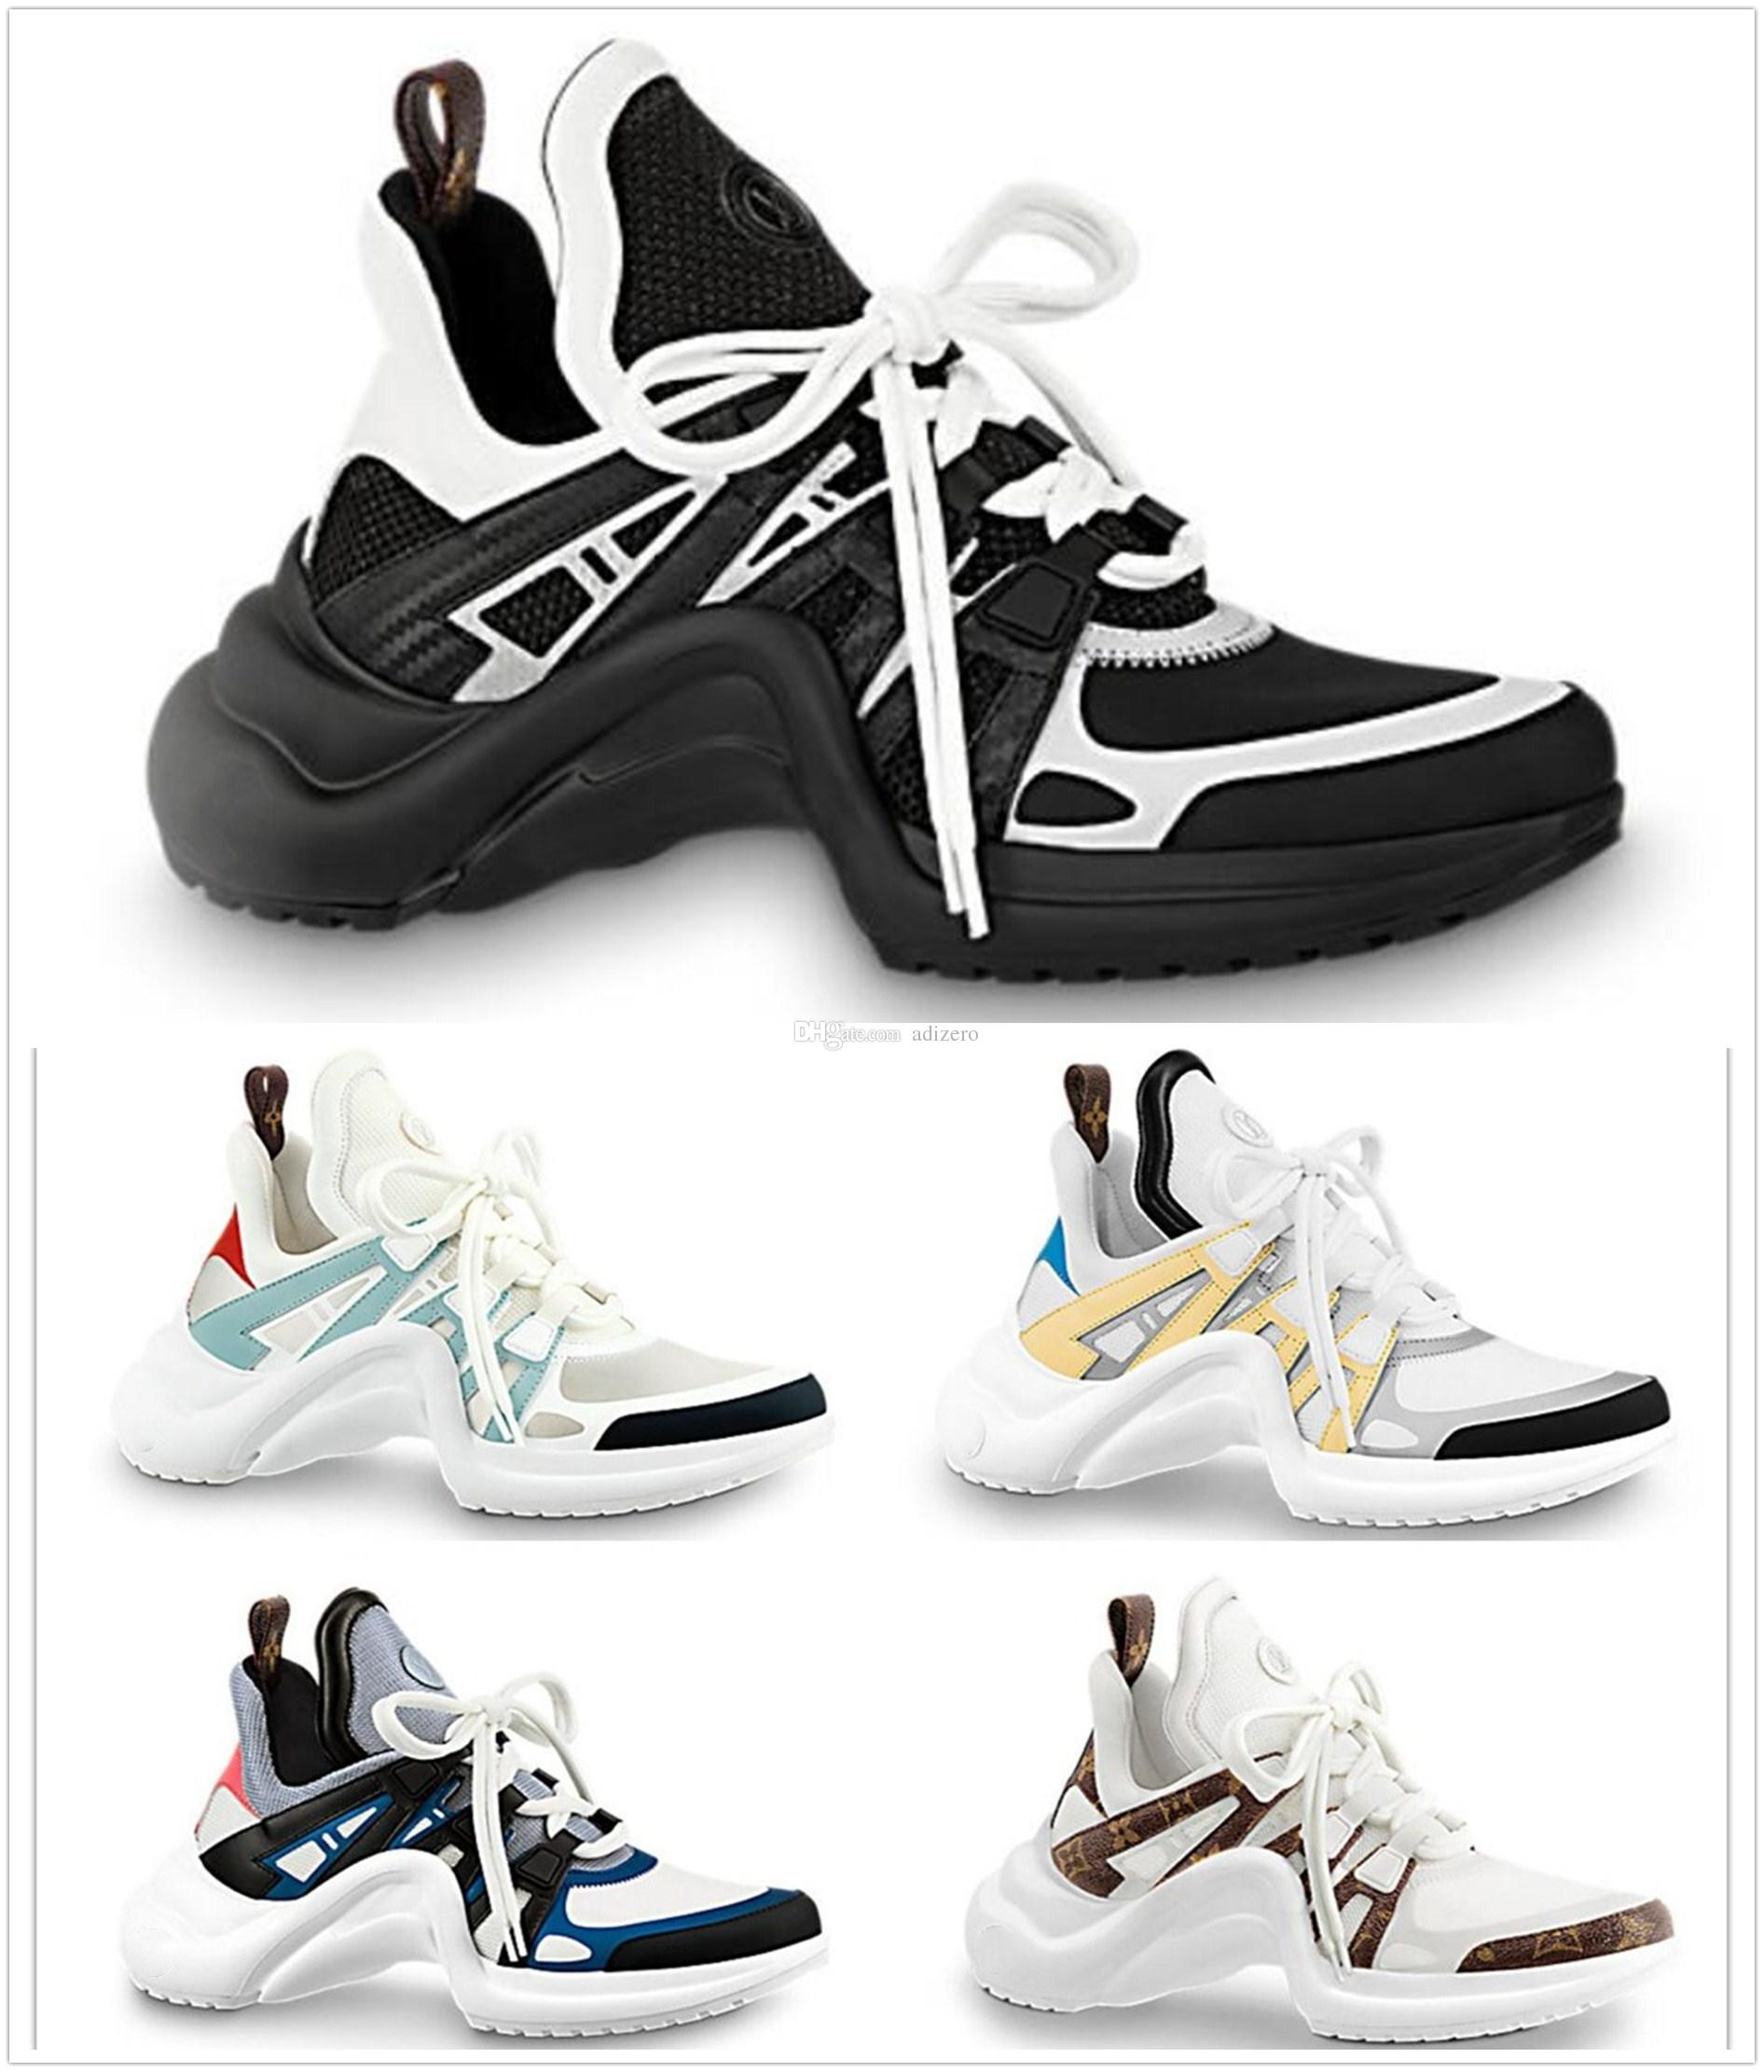 Mens and womens sneakers sneakers